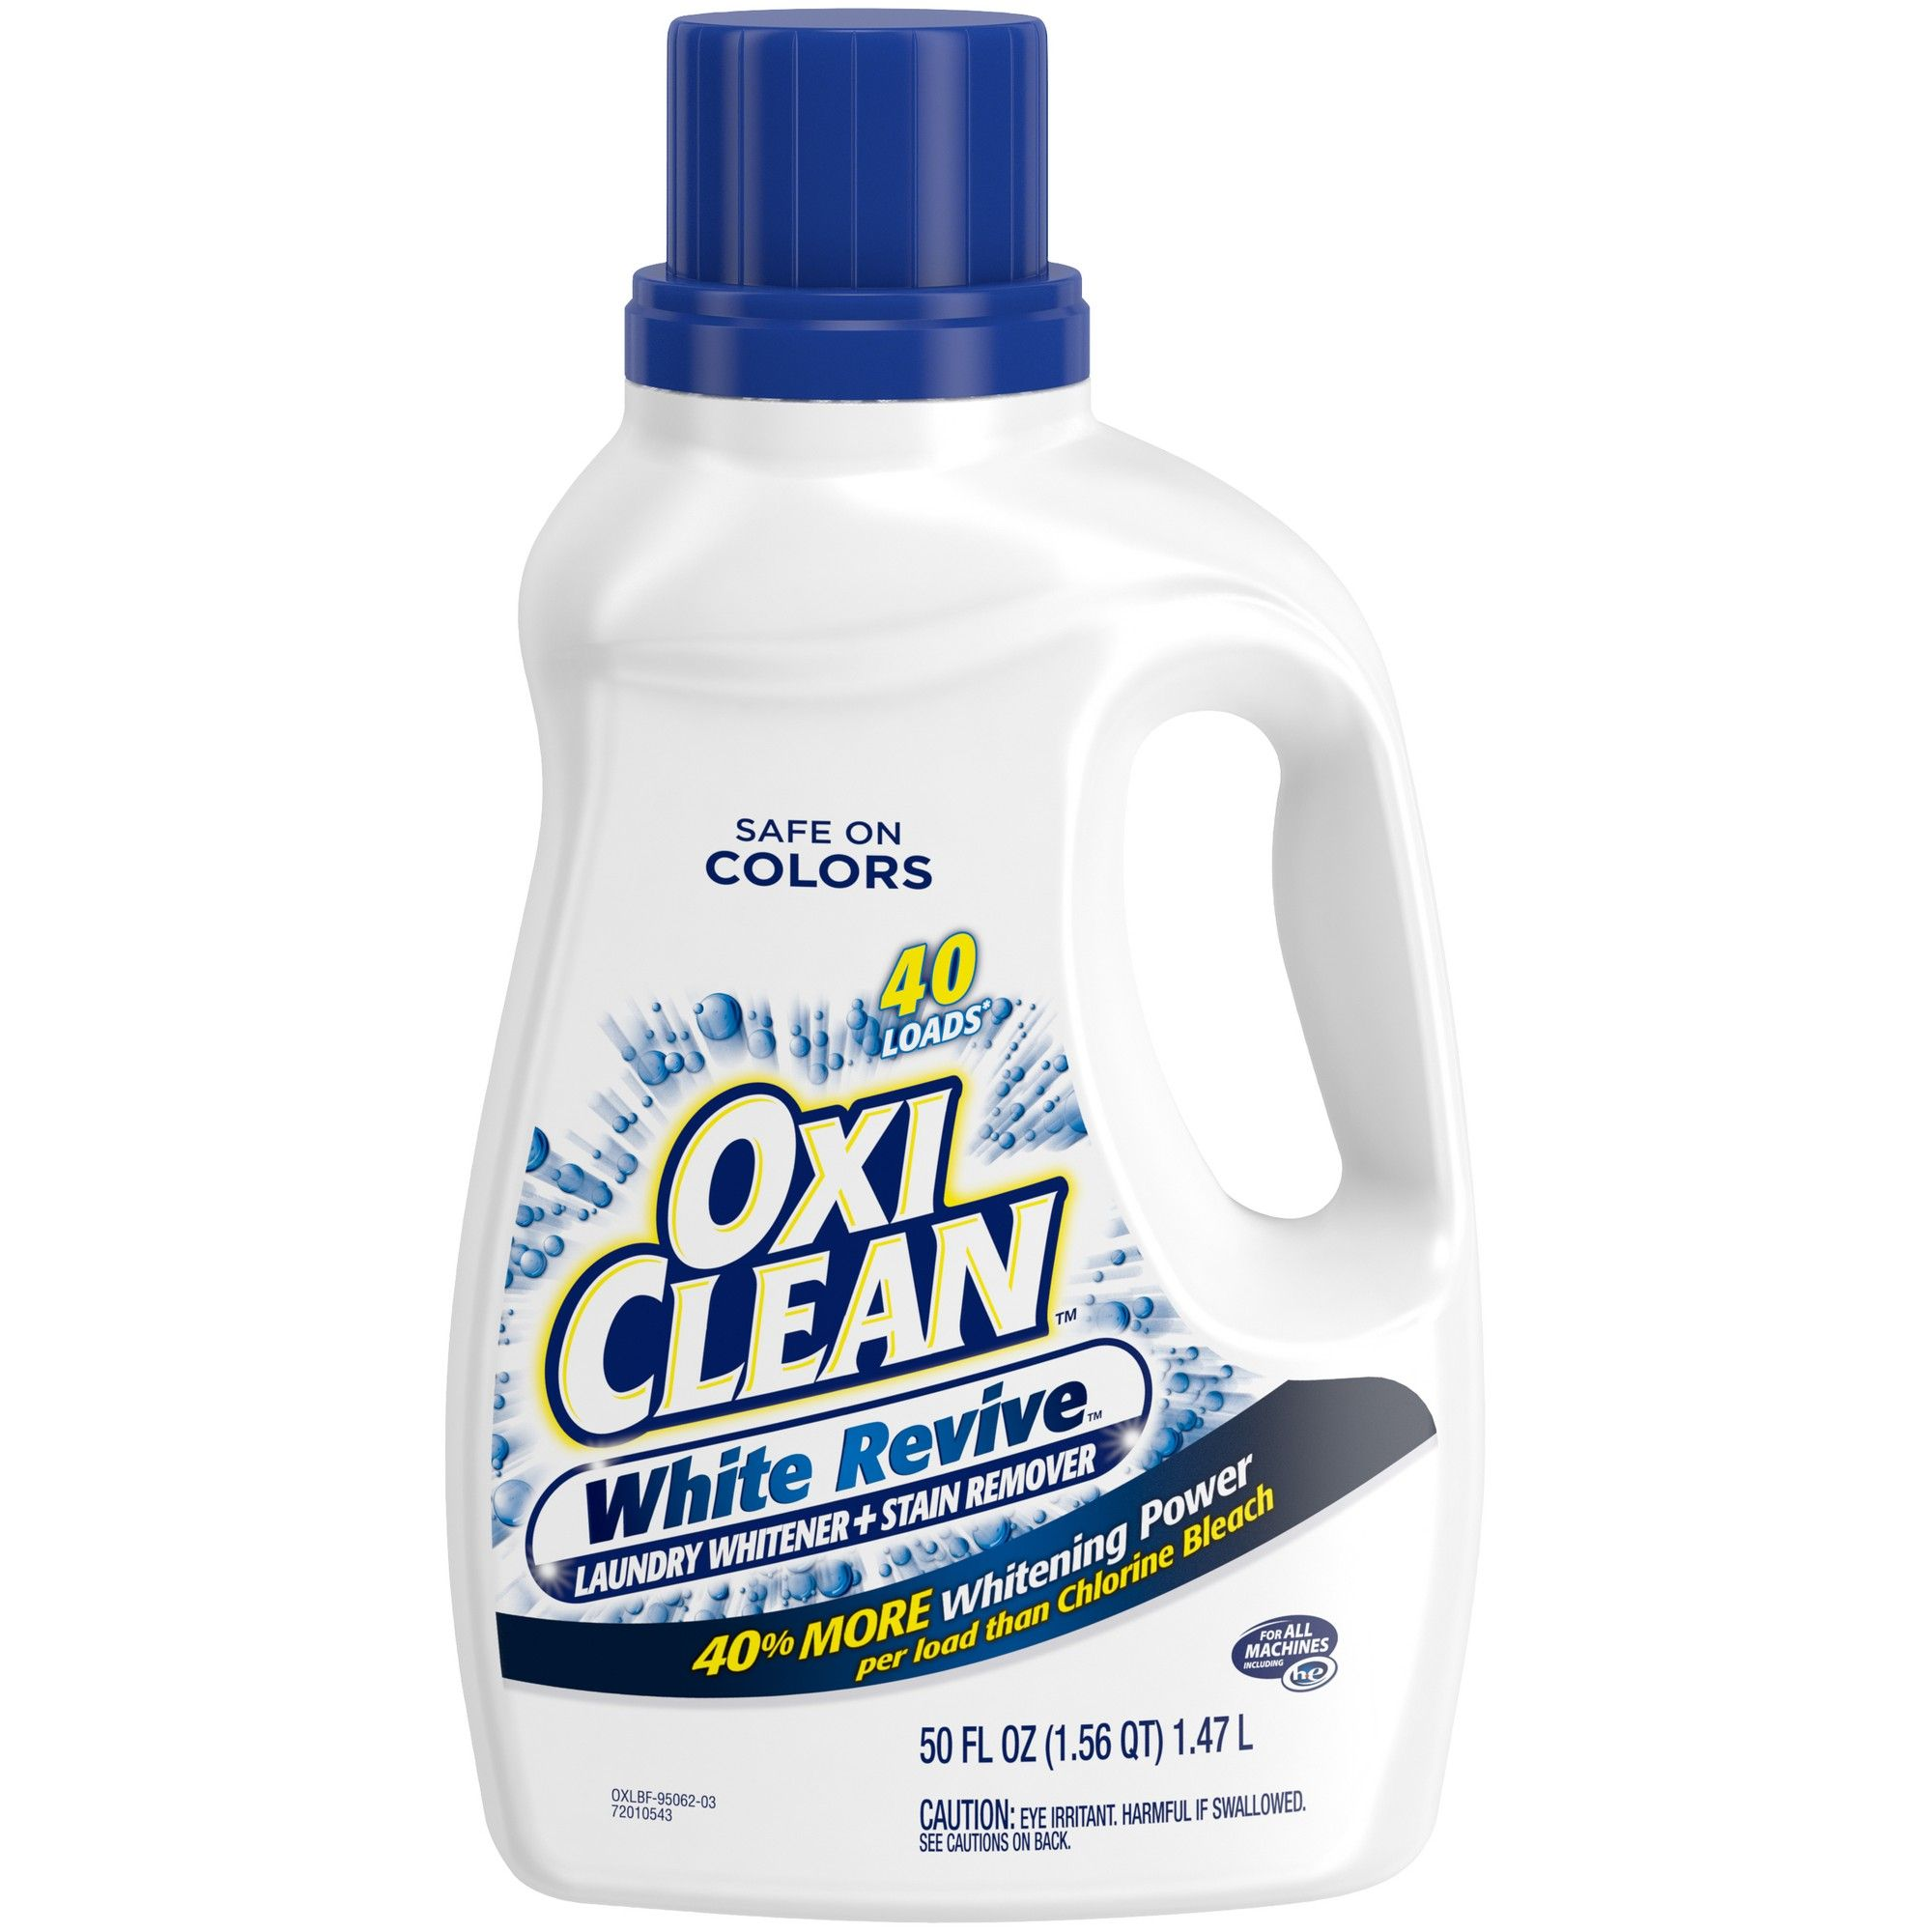 Oxiclean White Revive Liquid Laundry Whitener Stain Remover